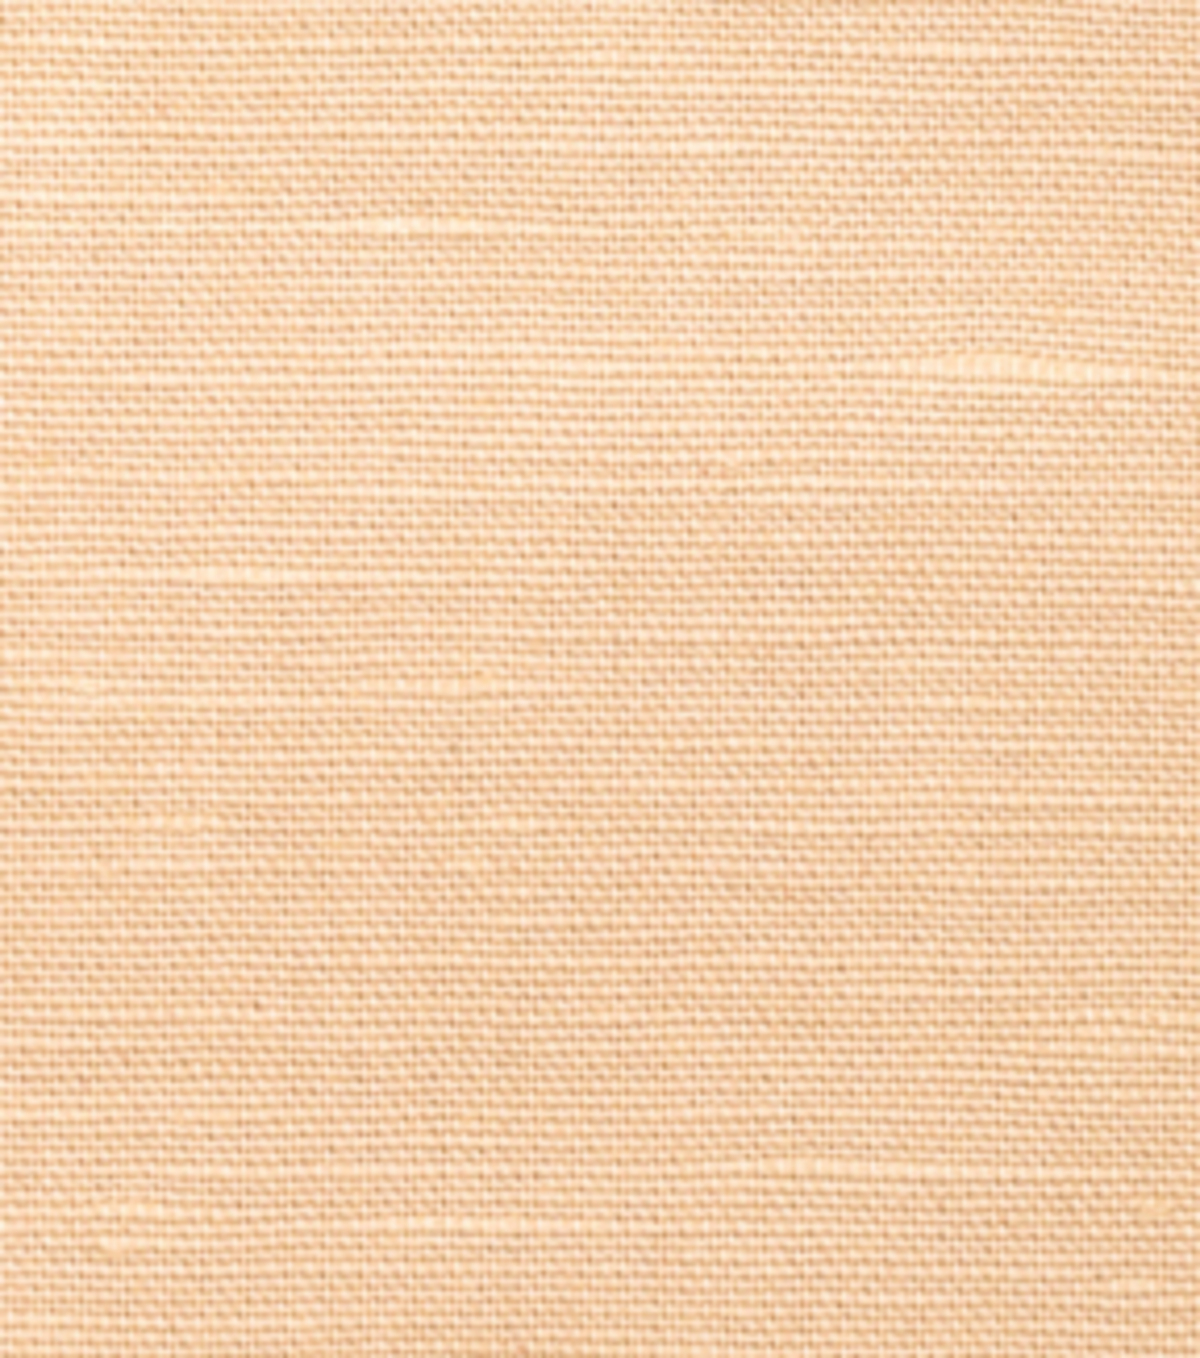 Home Decor 8\u0022x8\u0022 Fabric Swatch-Signature Series Sonoma Linen-Cotton Flax